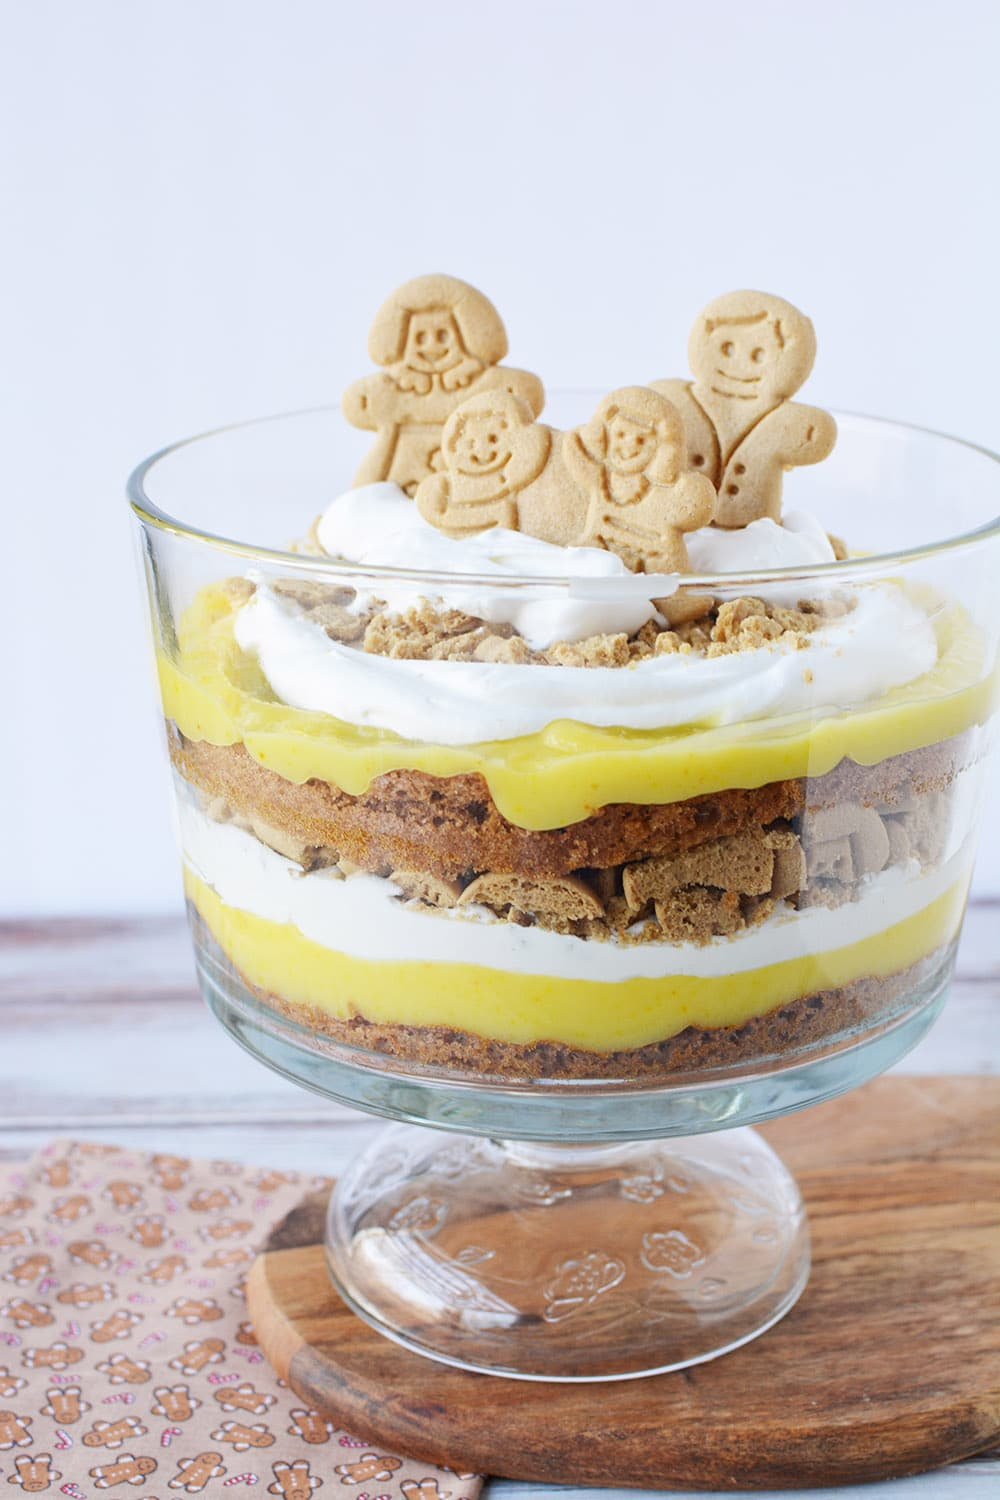 Layers of pudding, whipped cream, cookies, and cake in a gingerbread trifle.